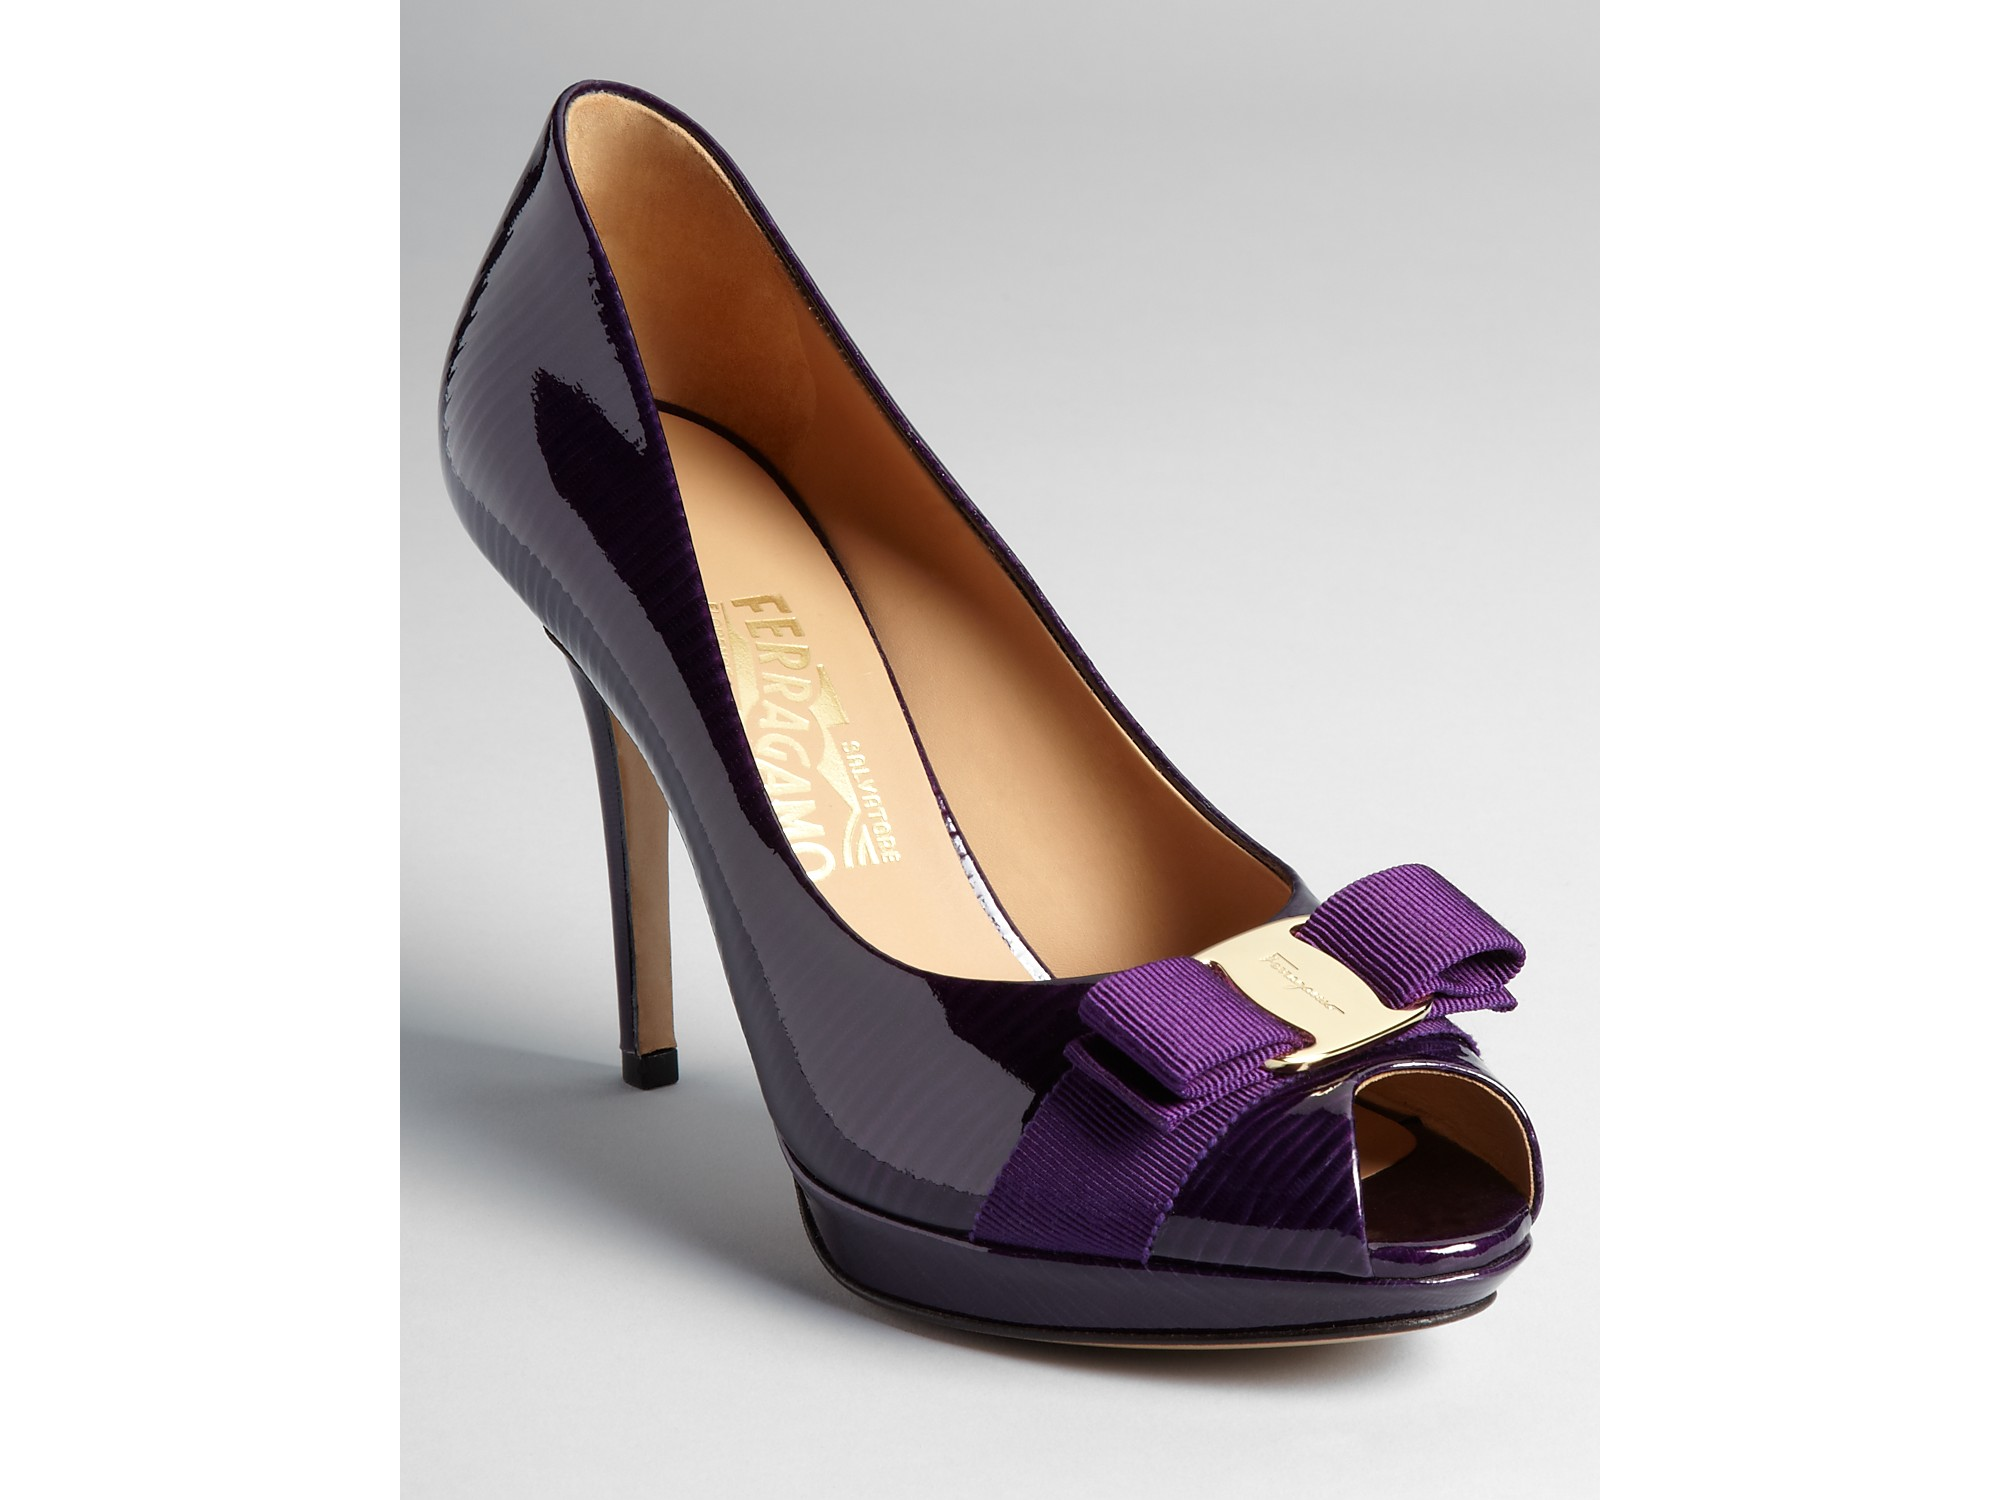 3e43f51a80c2 Lyst - Ferragamo Pumps Talia High Heel Peep Toe Platform in Purple